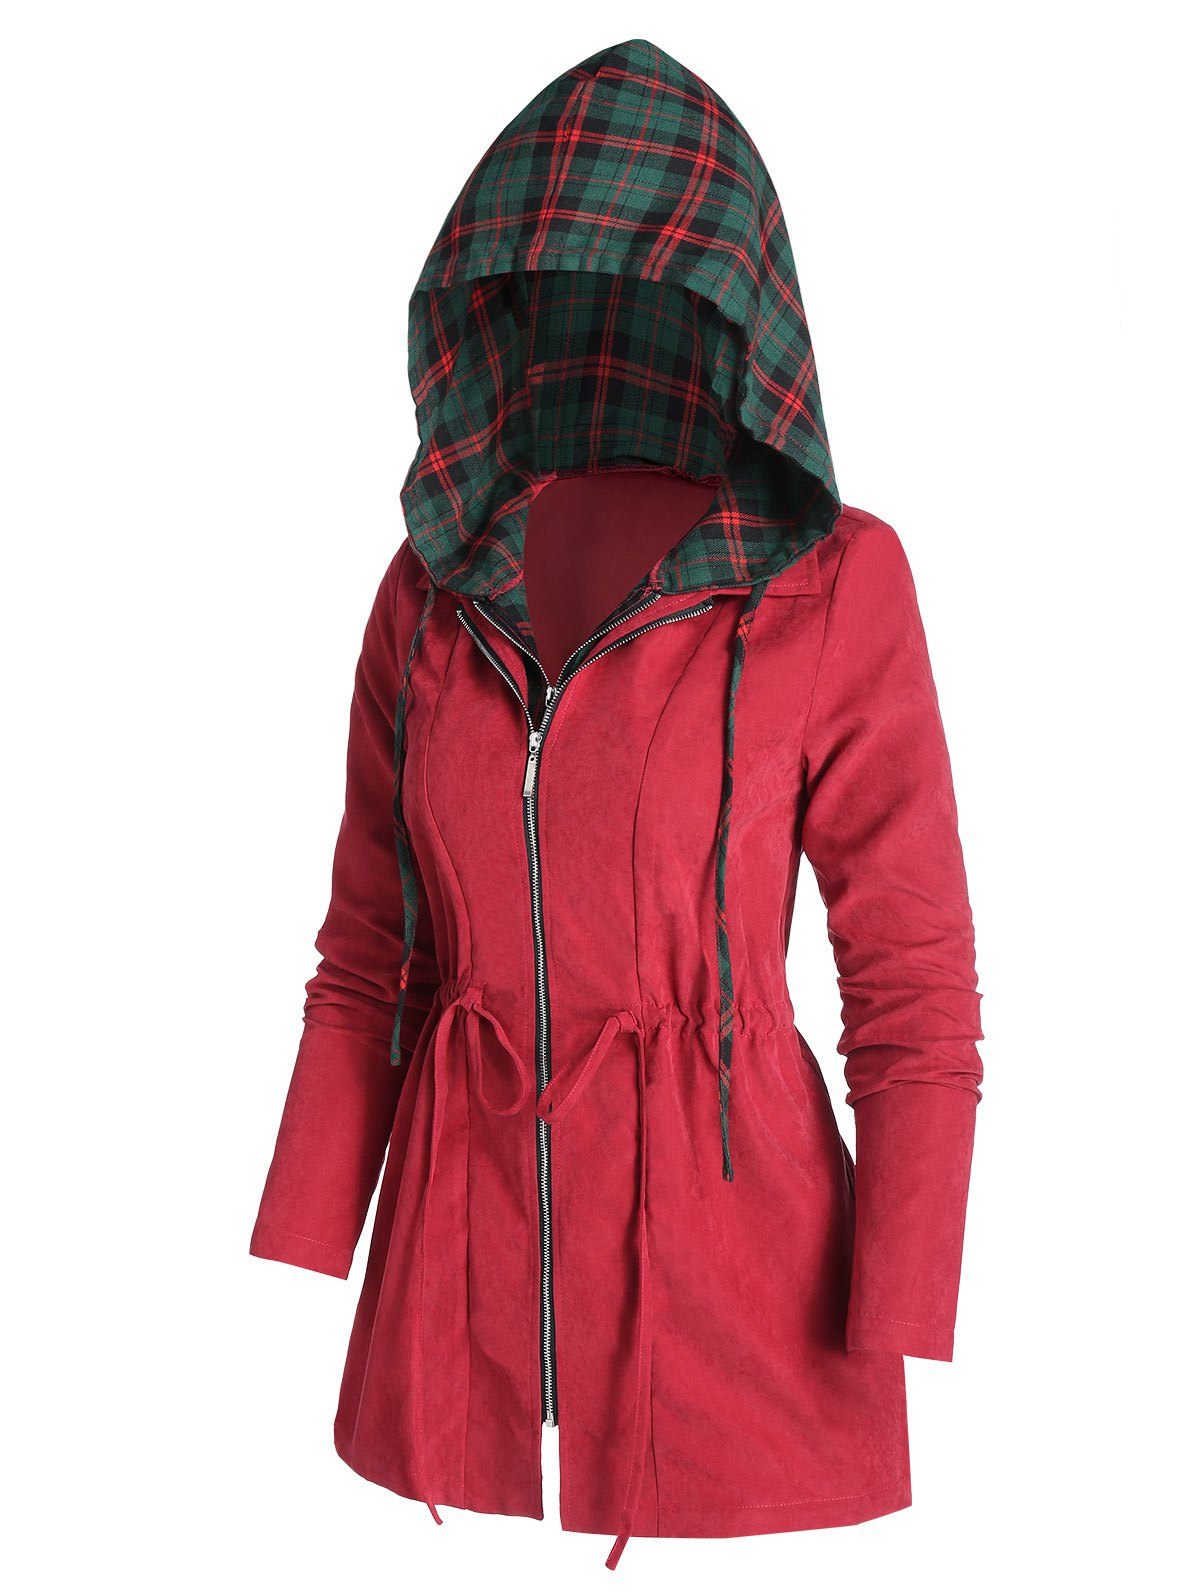 Drawstring Hooded Plaid Coat